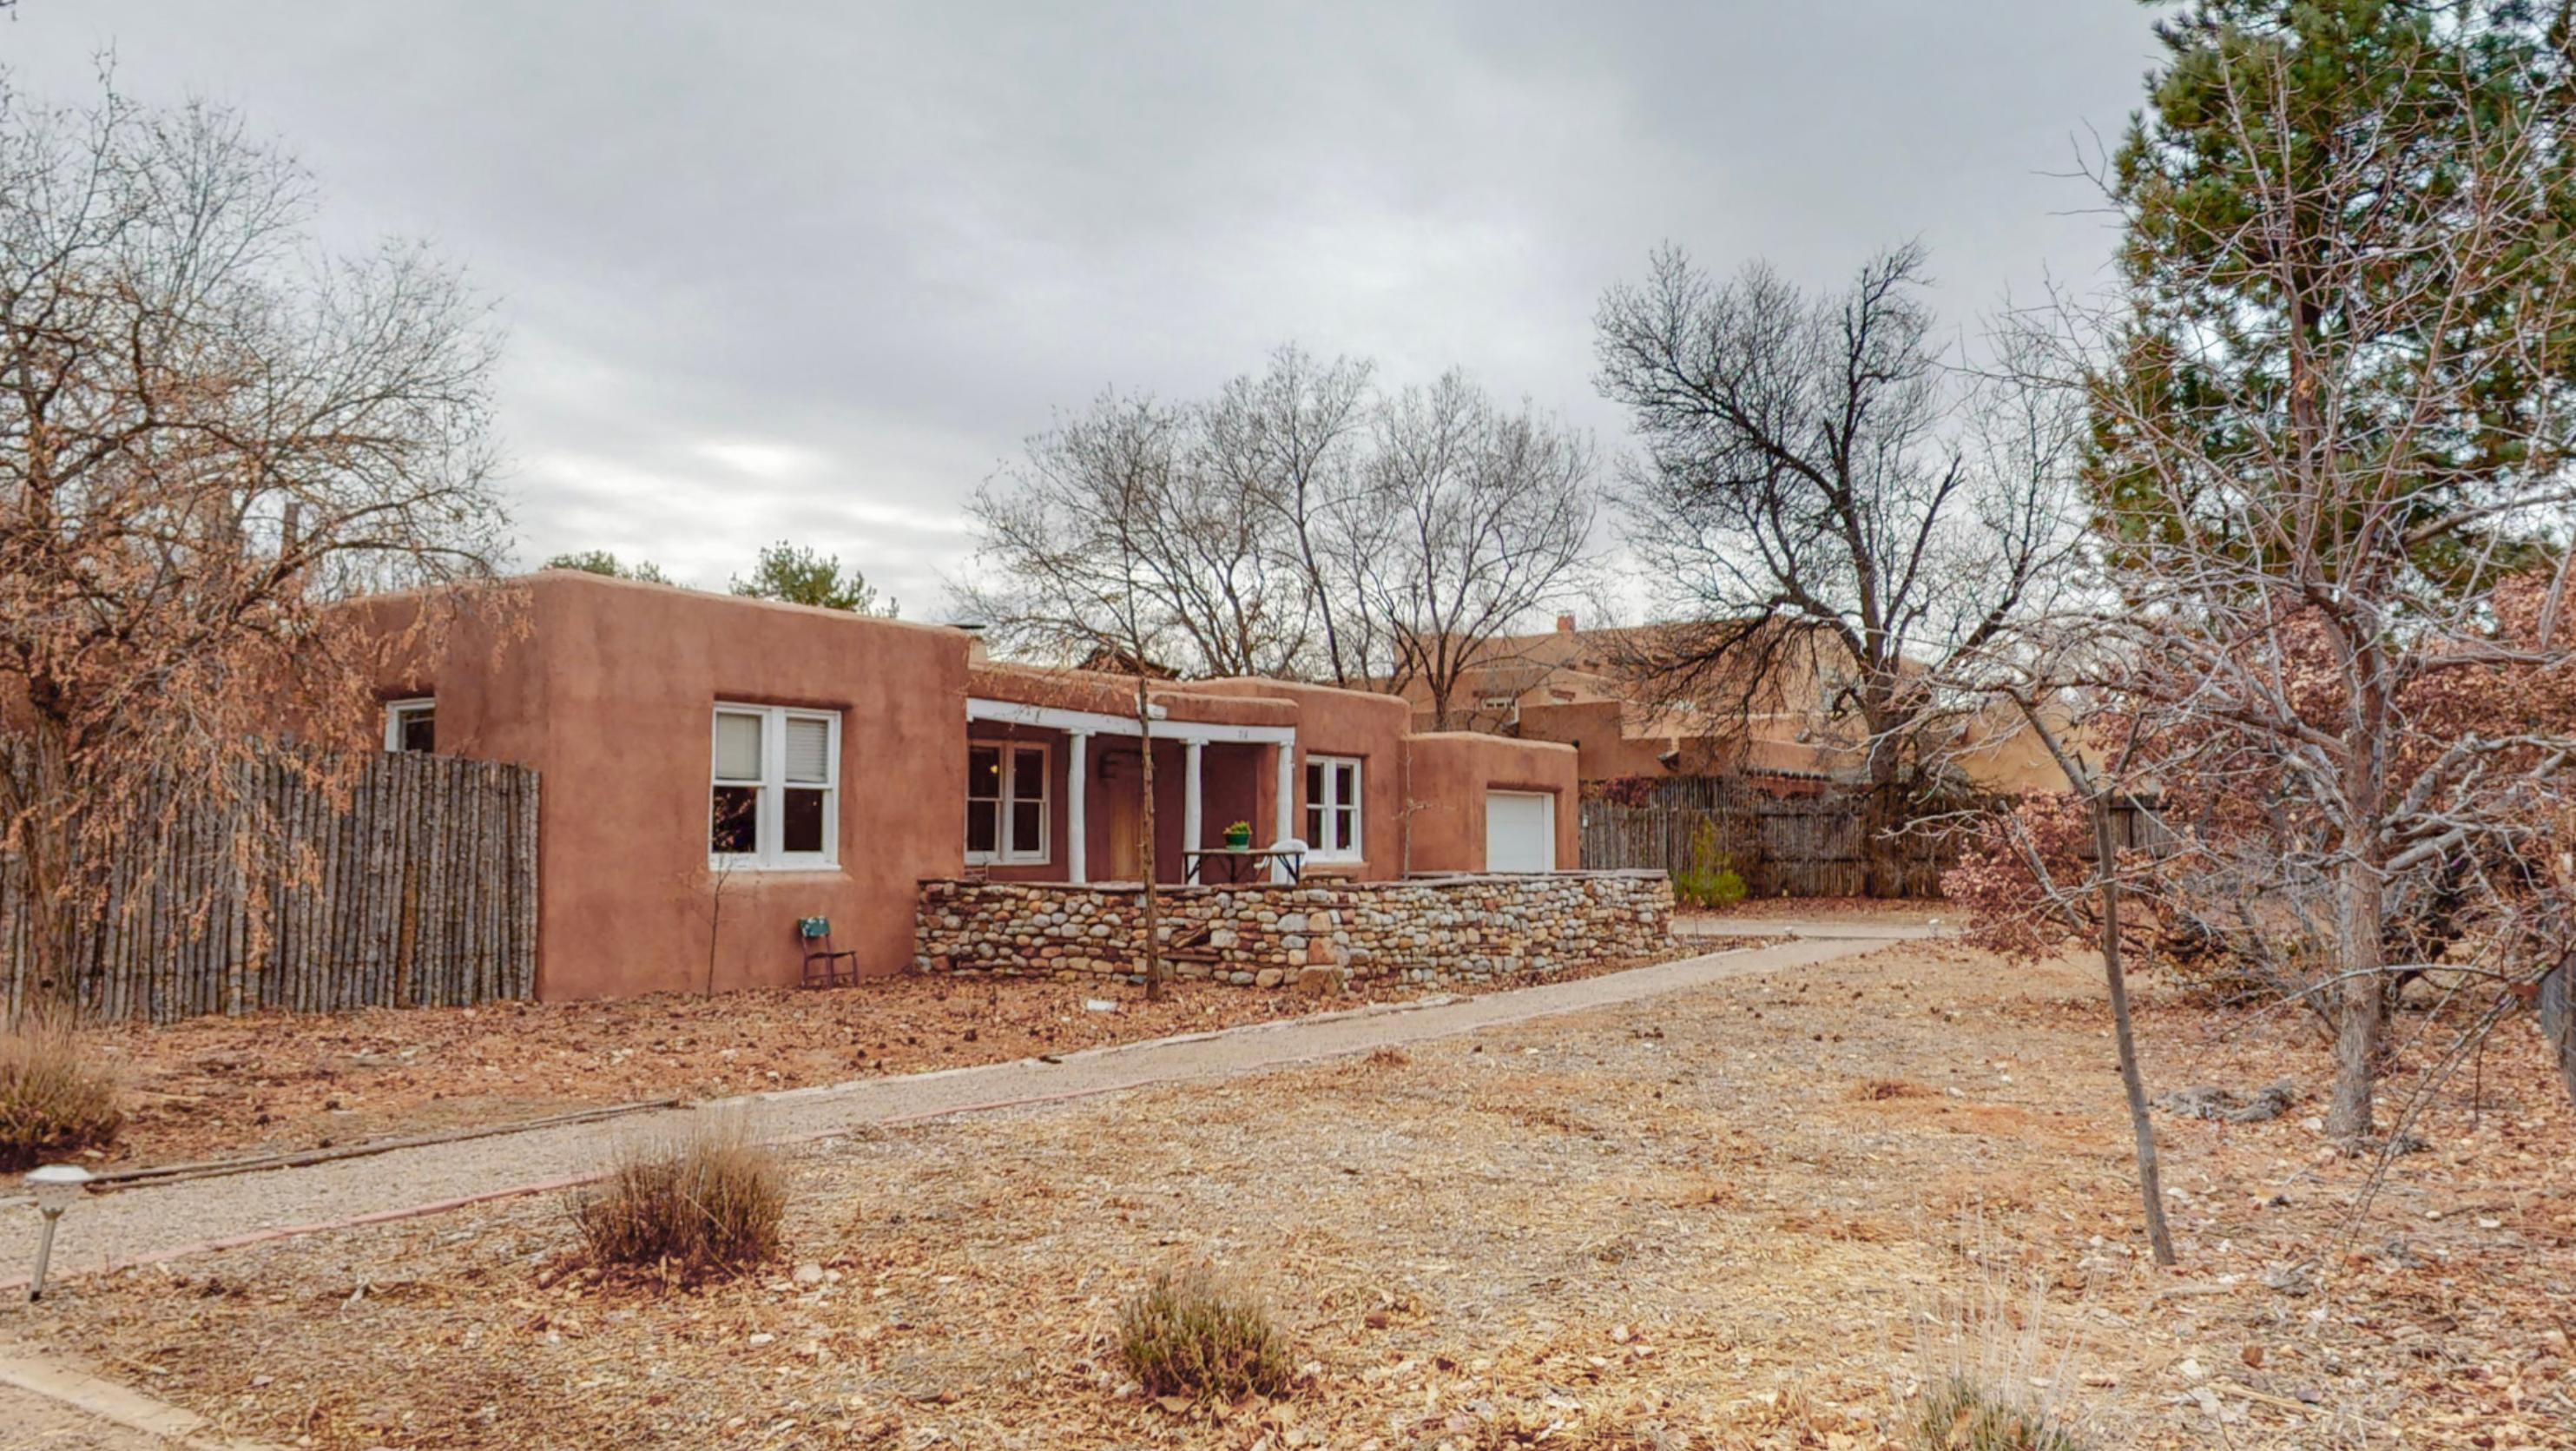 Charming Pueblo style 3 bedroom, 2 bath 1557 sf home on large .76 acre lot in beautiful village of Los Ranchos. Narrow-slat oak hardwood floors, coved ceilings, sky lights, refrig AC, handmade wood plank doors, 2 remodeled baths including heated towel bar, new foam roof 2019. Pella doors bring lots of light into the kitchen. Huge fully fenced backyard has MRGCD ditch irrigation for garden, shed style barn for storage or animals, many fruit trees including apple, pear, plum & apricot.  Sellers gardened organically for 26 years- no pesticides! Need to add more space or build a casita? Lots of room on lot for more building. Low utility bills.  Seller owned solar panels provide energy for water heater & exterior insulation has been added to house.  Walk or bike on nearby trails. Come see it!